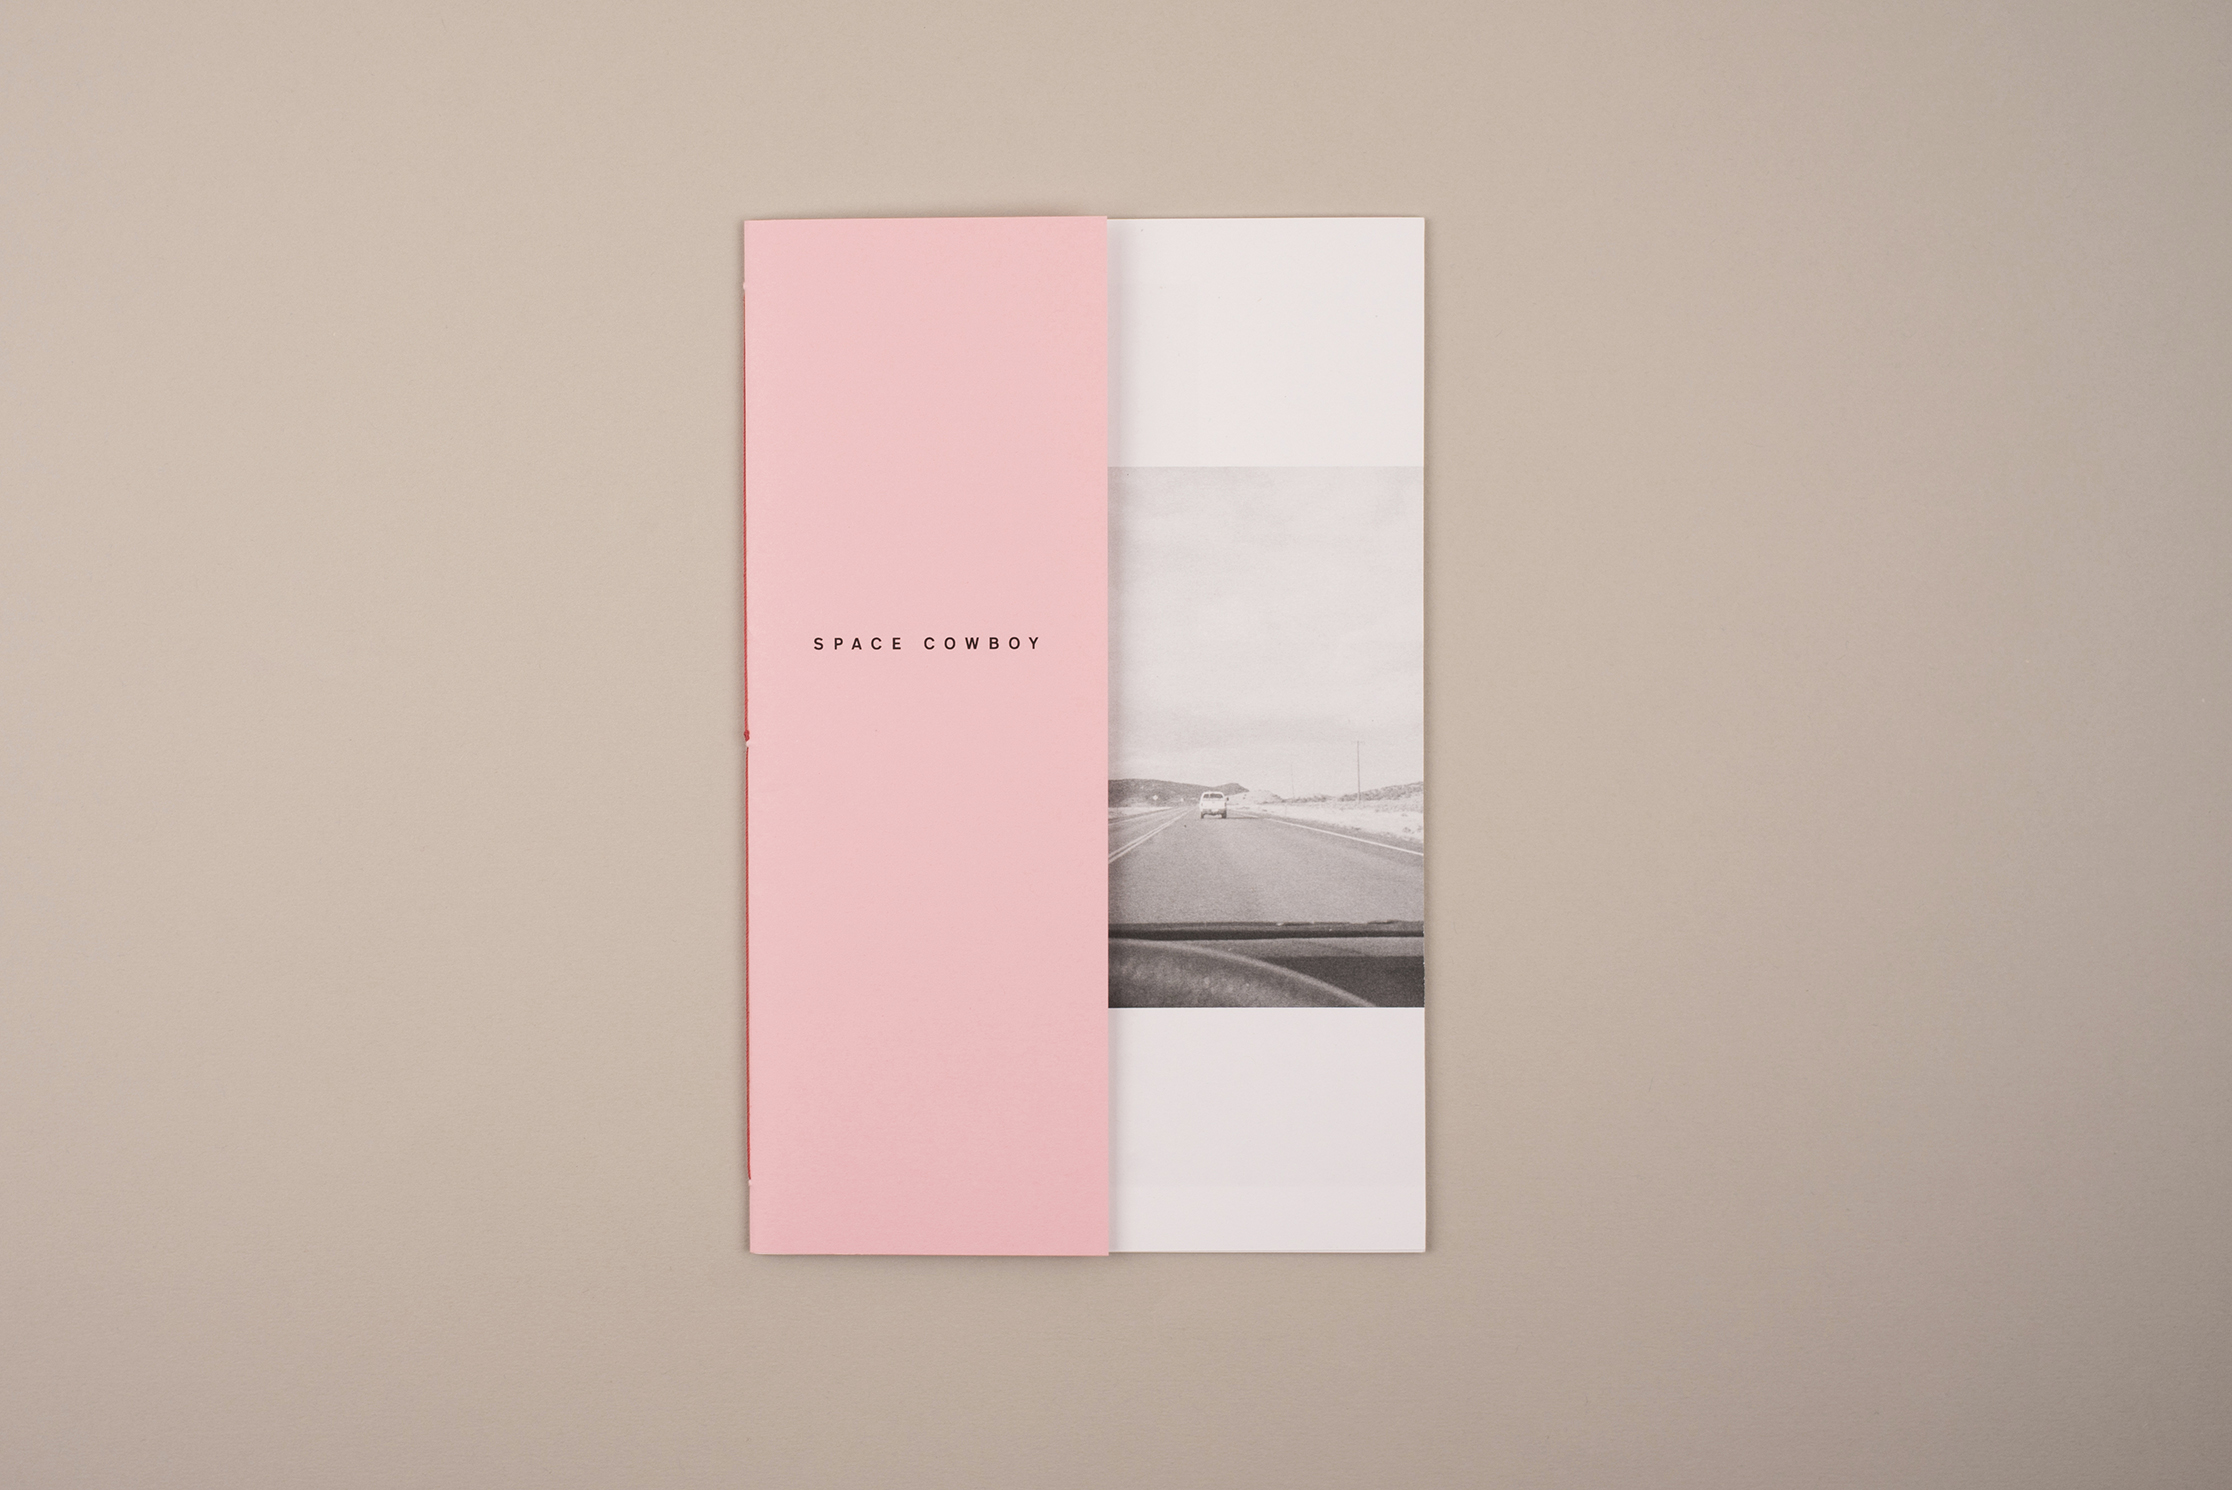 Space Cowboy zine, photography by Jack Latham. Poem by Sofia Kathryn Smith. A zine about hitchhiking in America. Light Pink half sized cover.